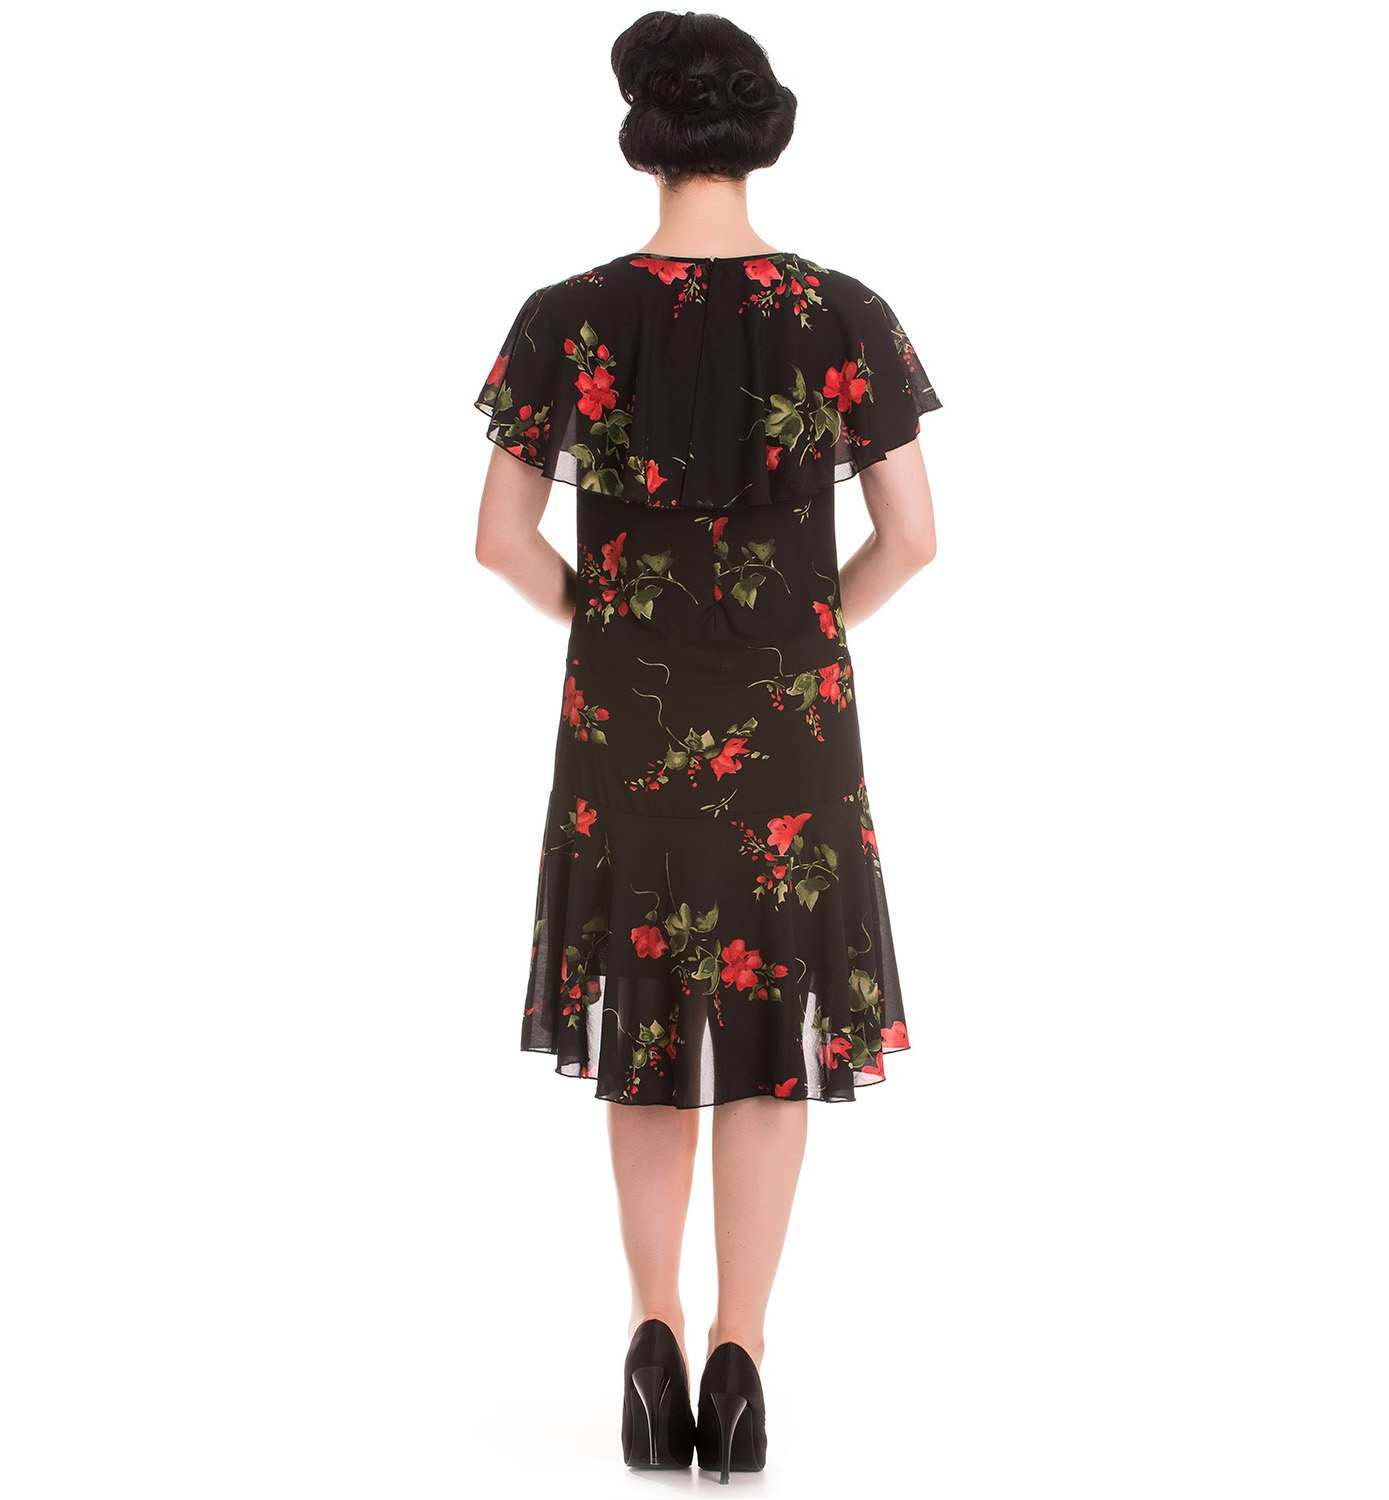 Hell-Bunny-20s-40s-Black-Flapper-Cocktail-Party-Dress-LILY-Floral-Black-All-Size thumbnail 5